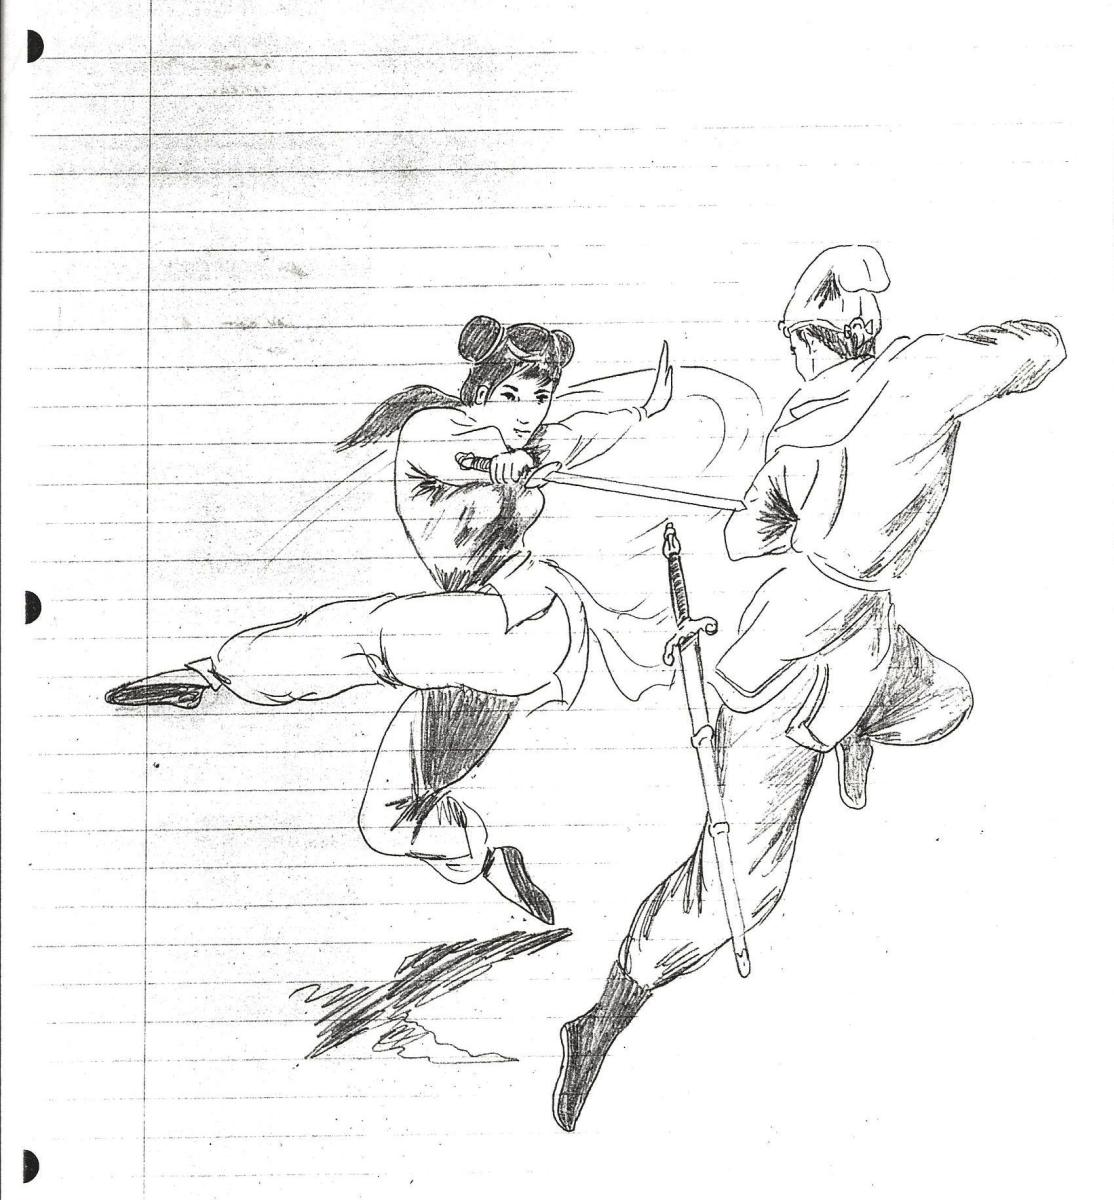 Lost Sketches Drawn By Bruce Lee